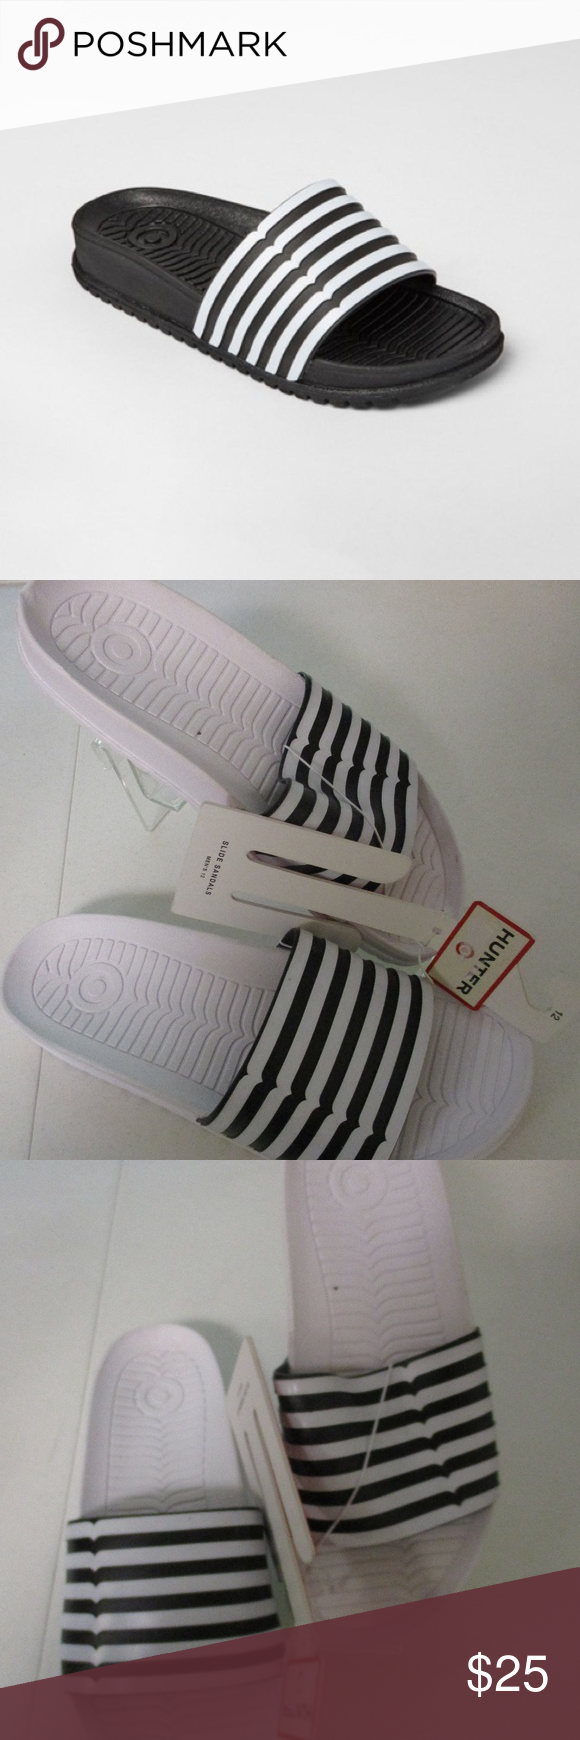 5a918e97447 Hunter Target Stripe Sandals Men s 12 13 New Hunter for Target Men s  Black White Athletic Striped Casual Slide Sandals in size 12 and 13  Sold  out in stores ...